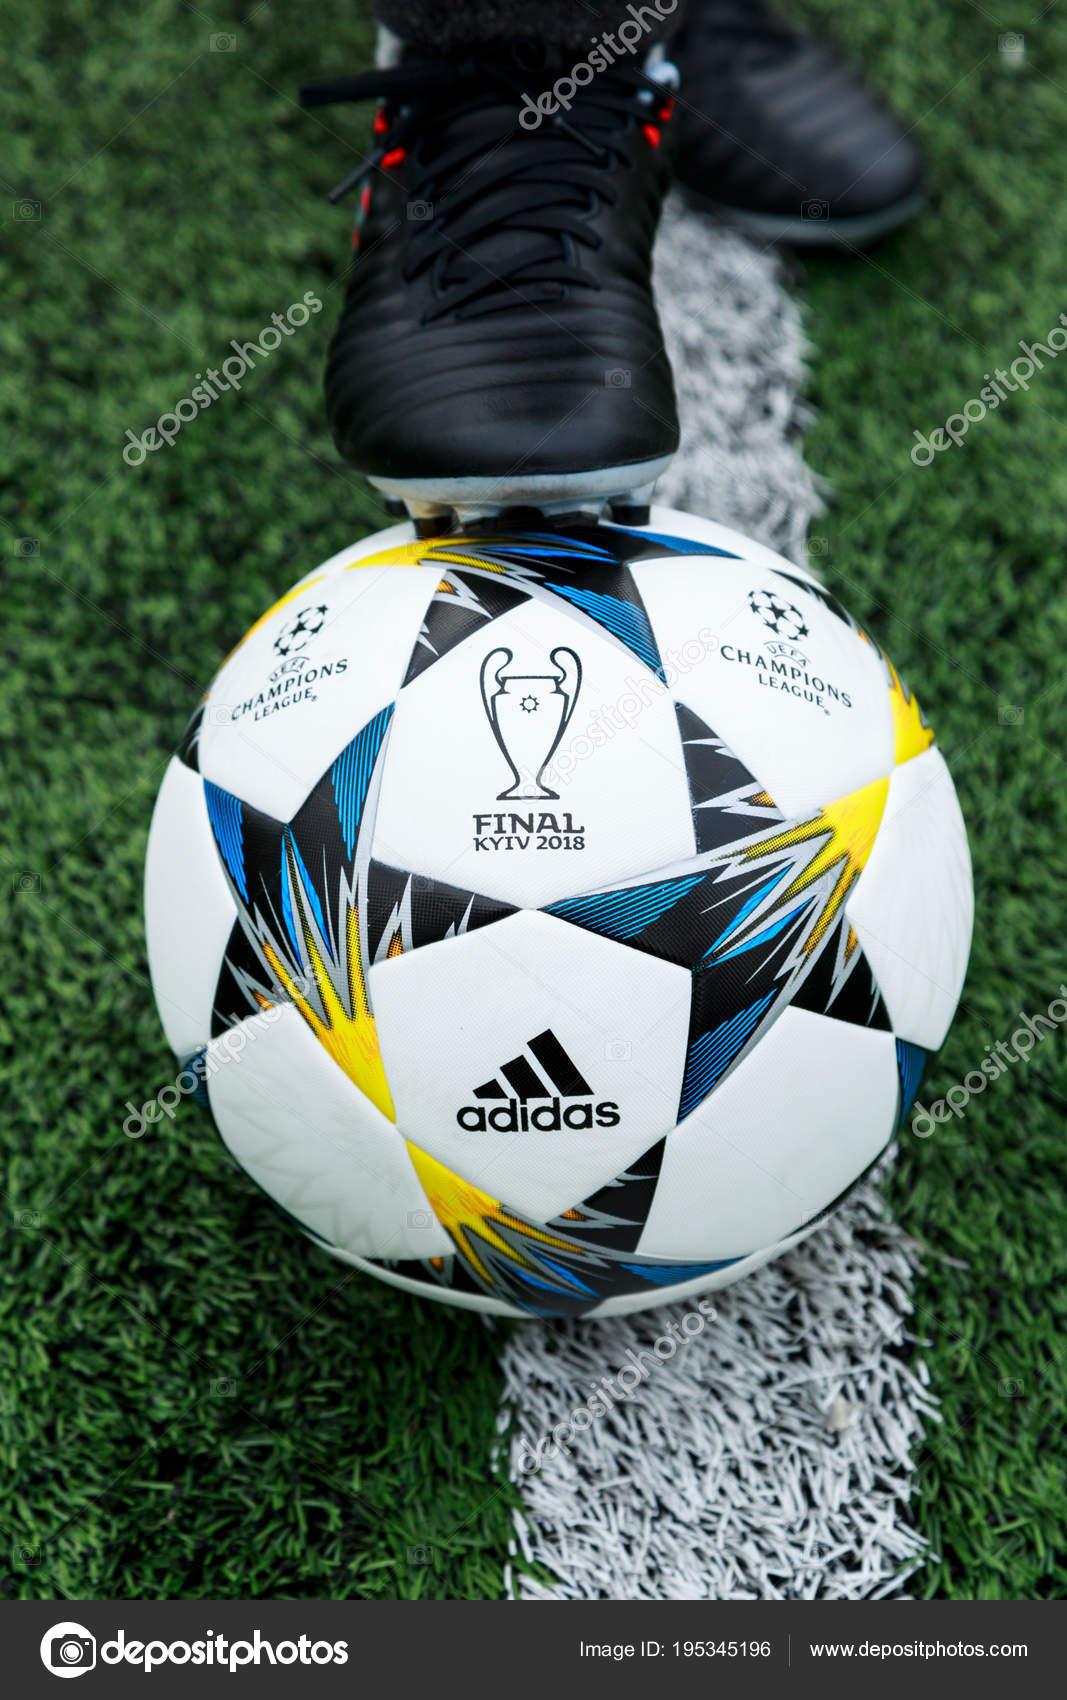 ce71719b8 KYIV, UKRAINE APRIL 05, 2018: Official match ball of UEFA Champions League  season 2017/18 Final Kyiv Adidas Finale 18 Kiev Top training on the grass  before ...